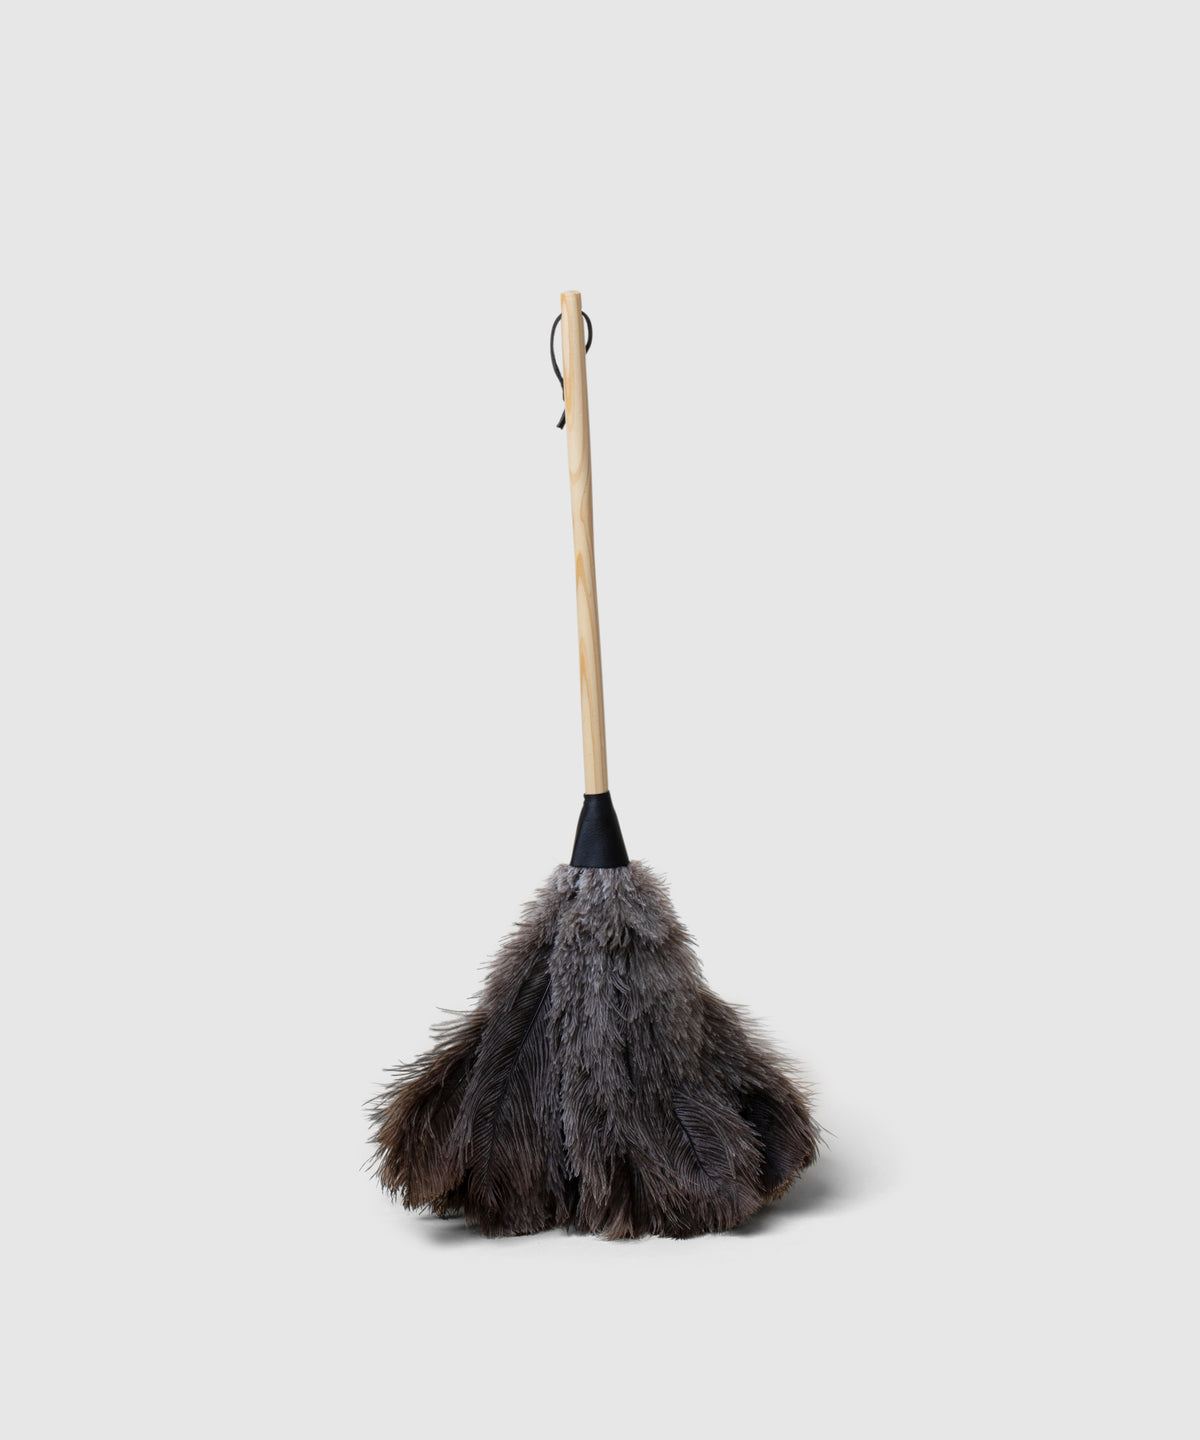 Blond Wood and Leather Feather Duster